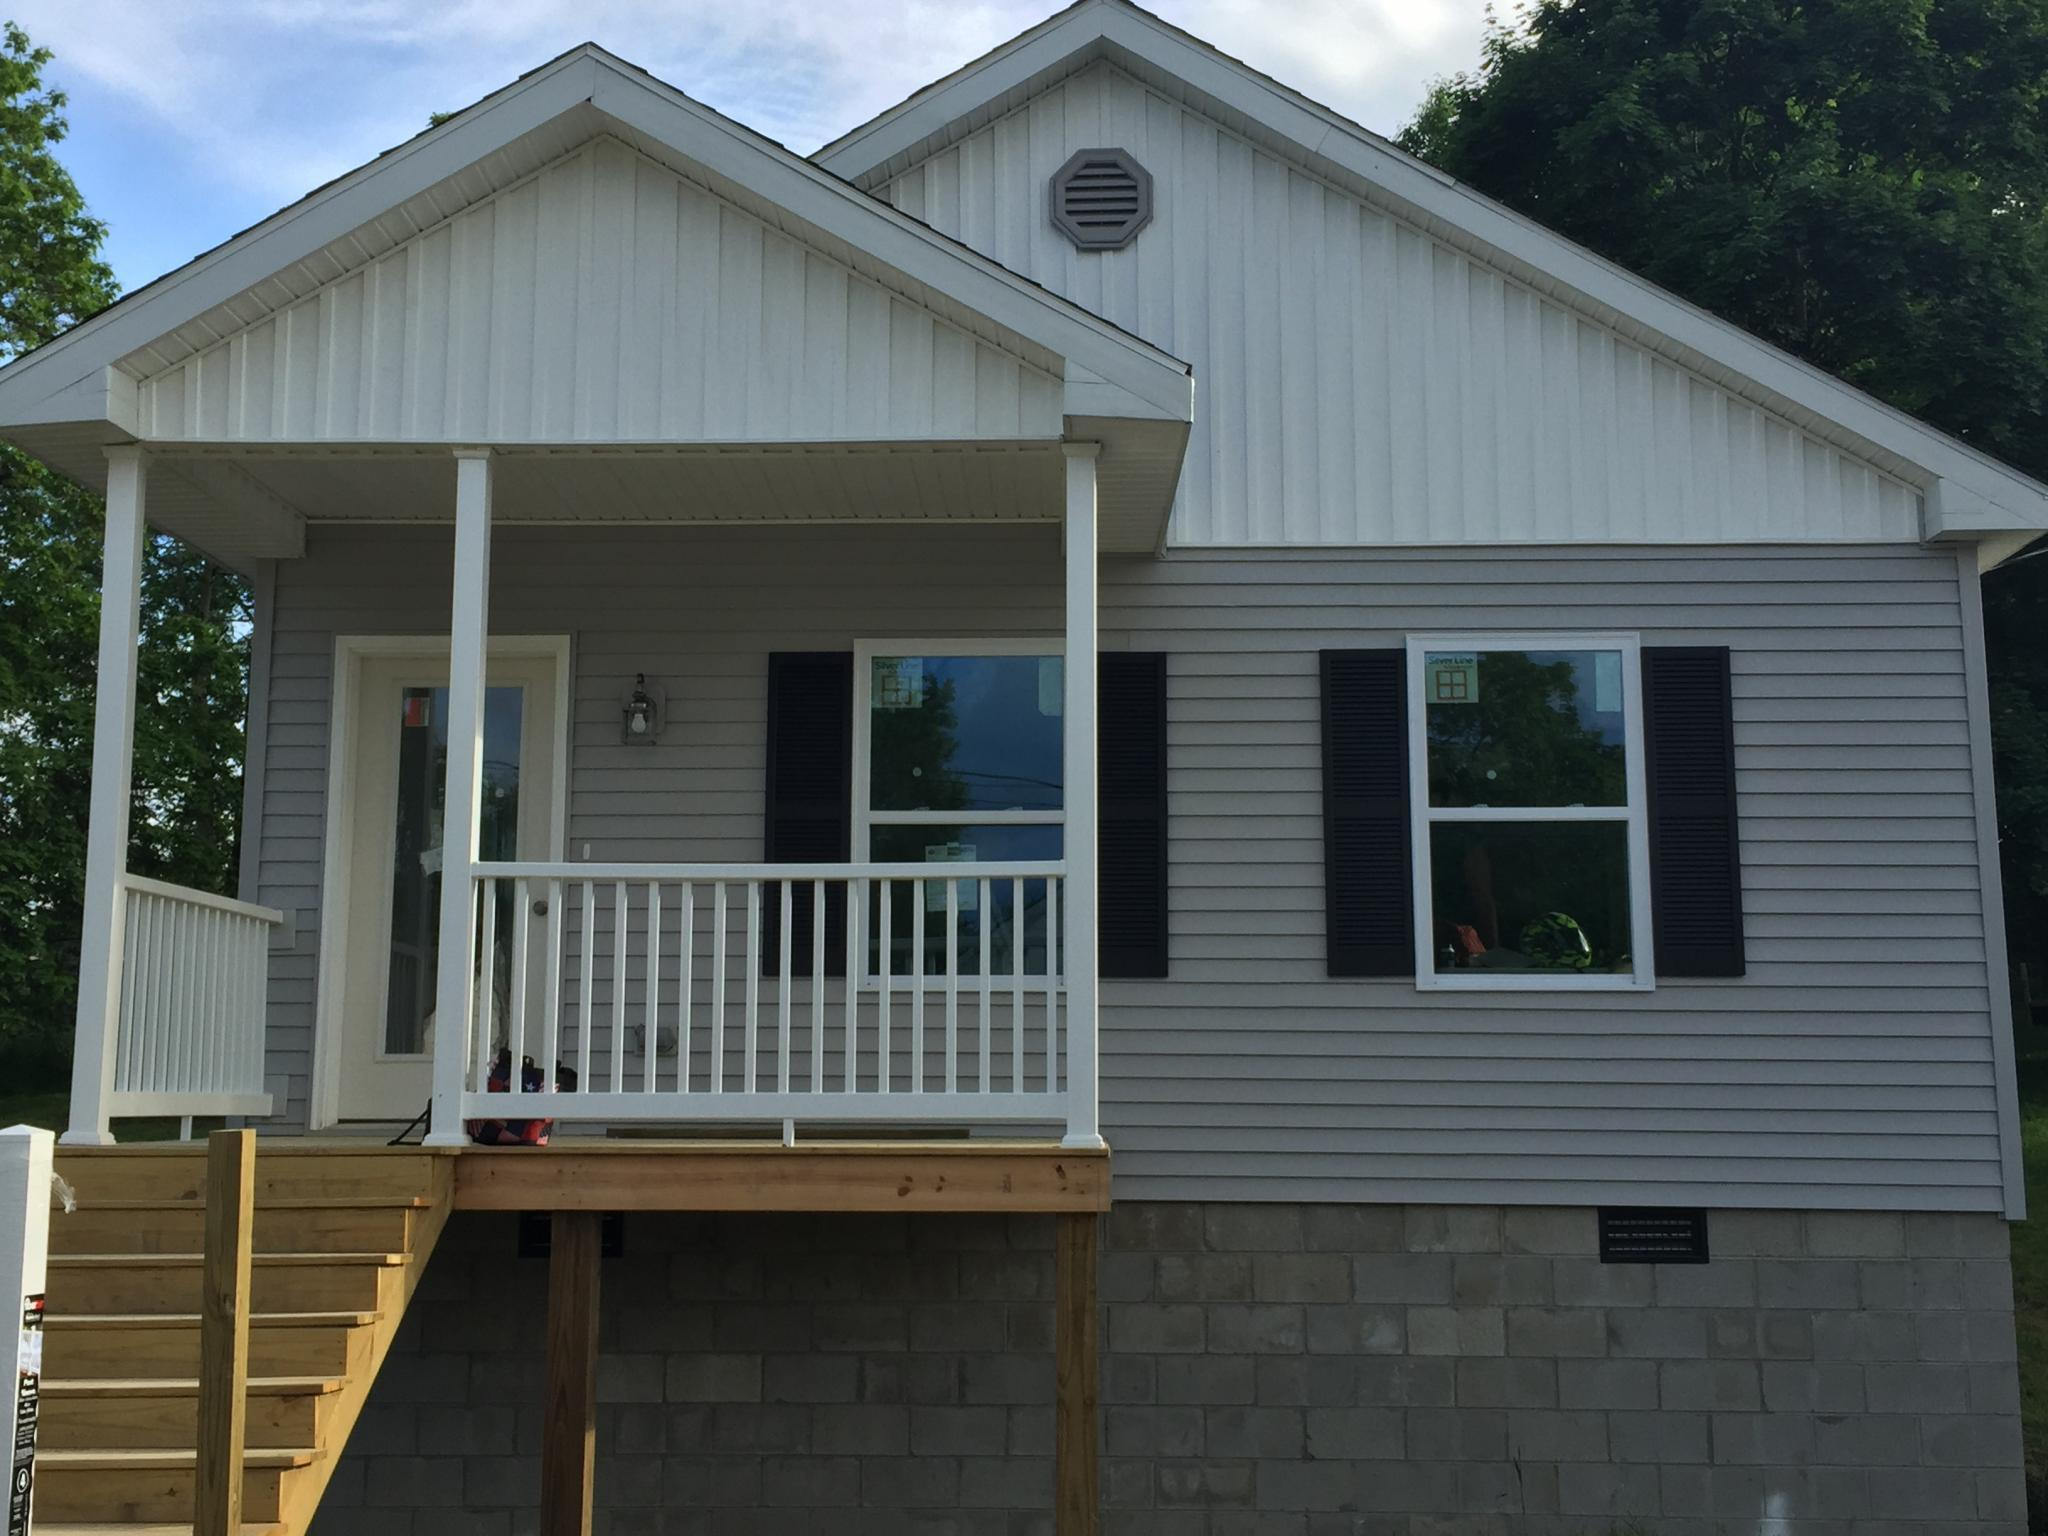 212 6th St Beckley Wv 3 Bed 2 Bath